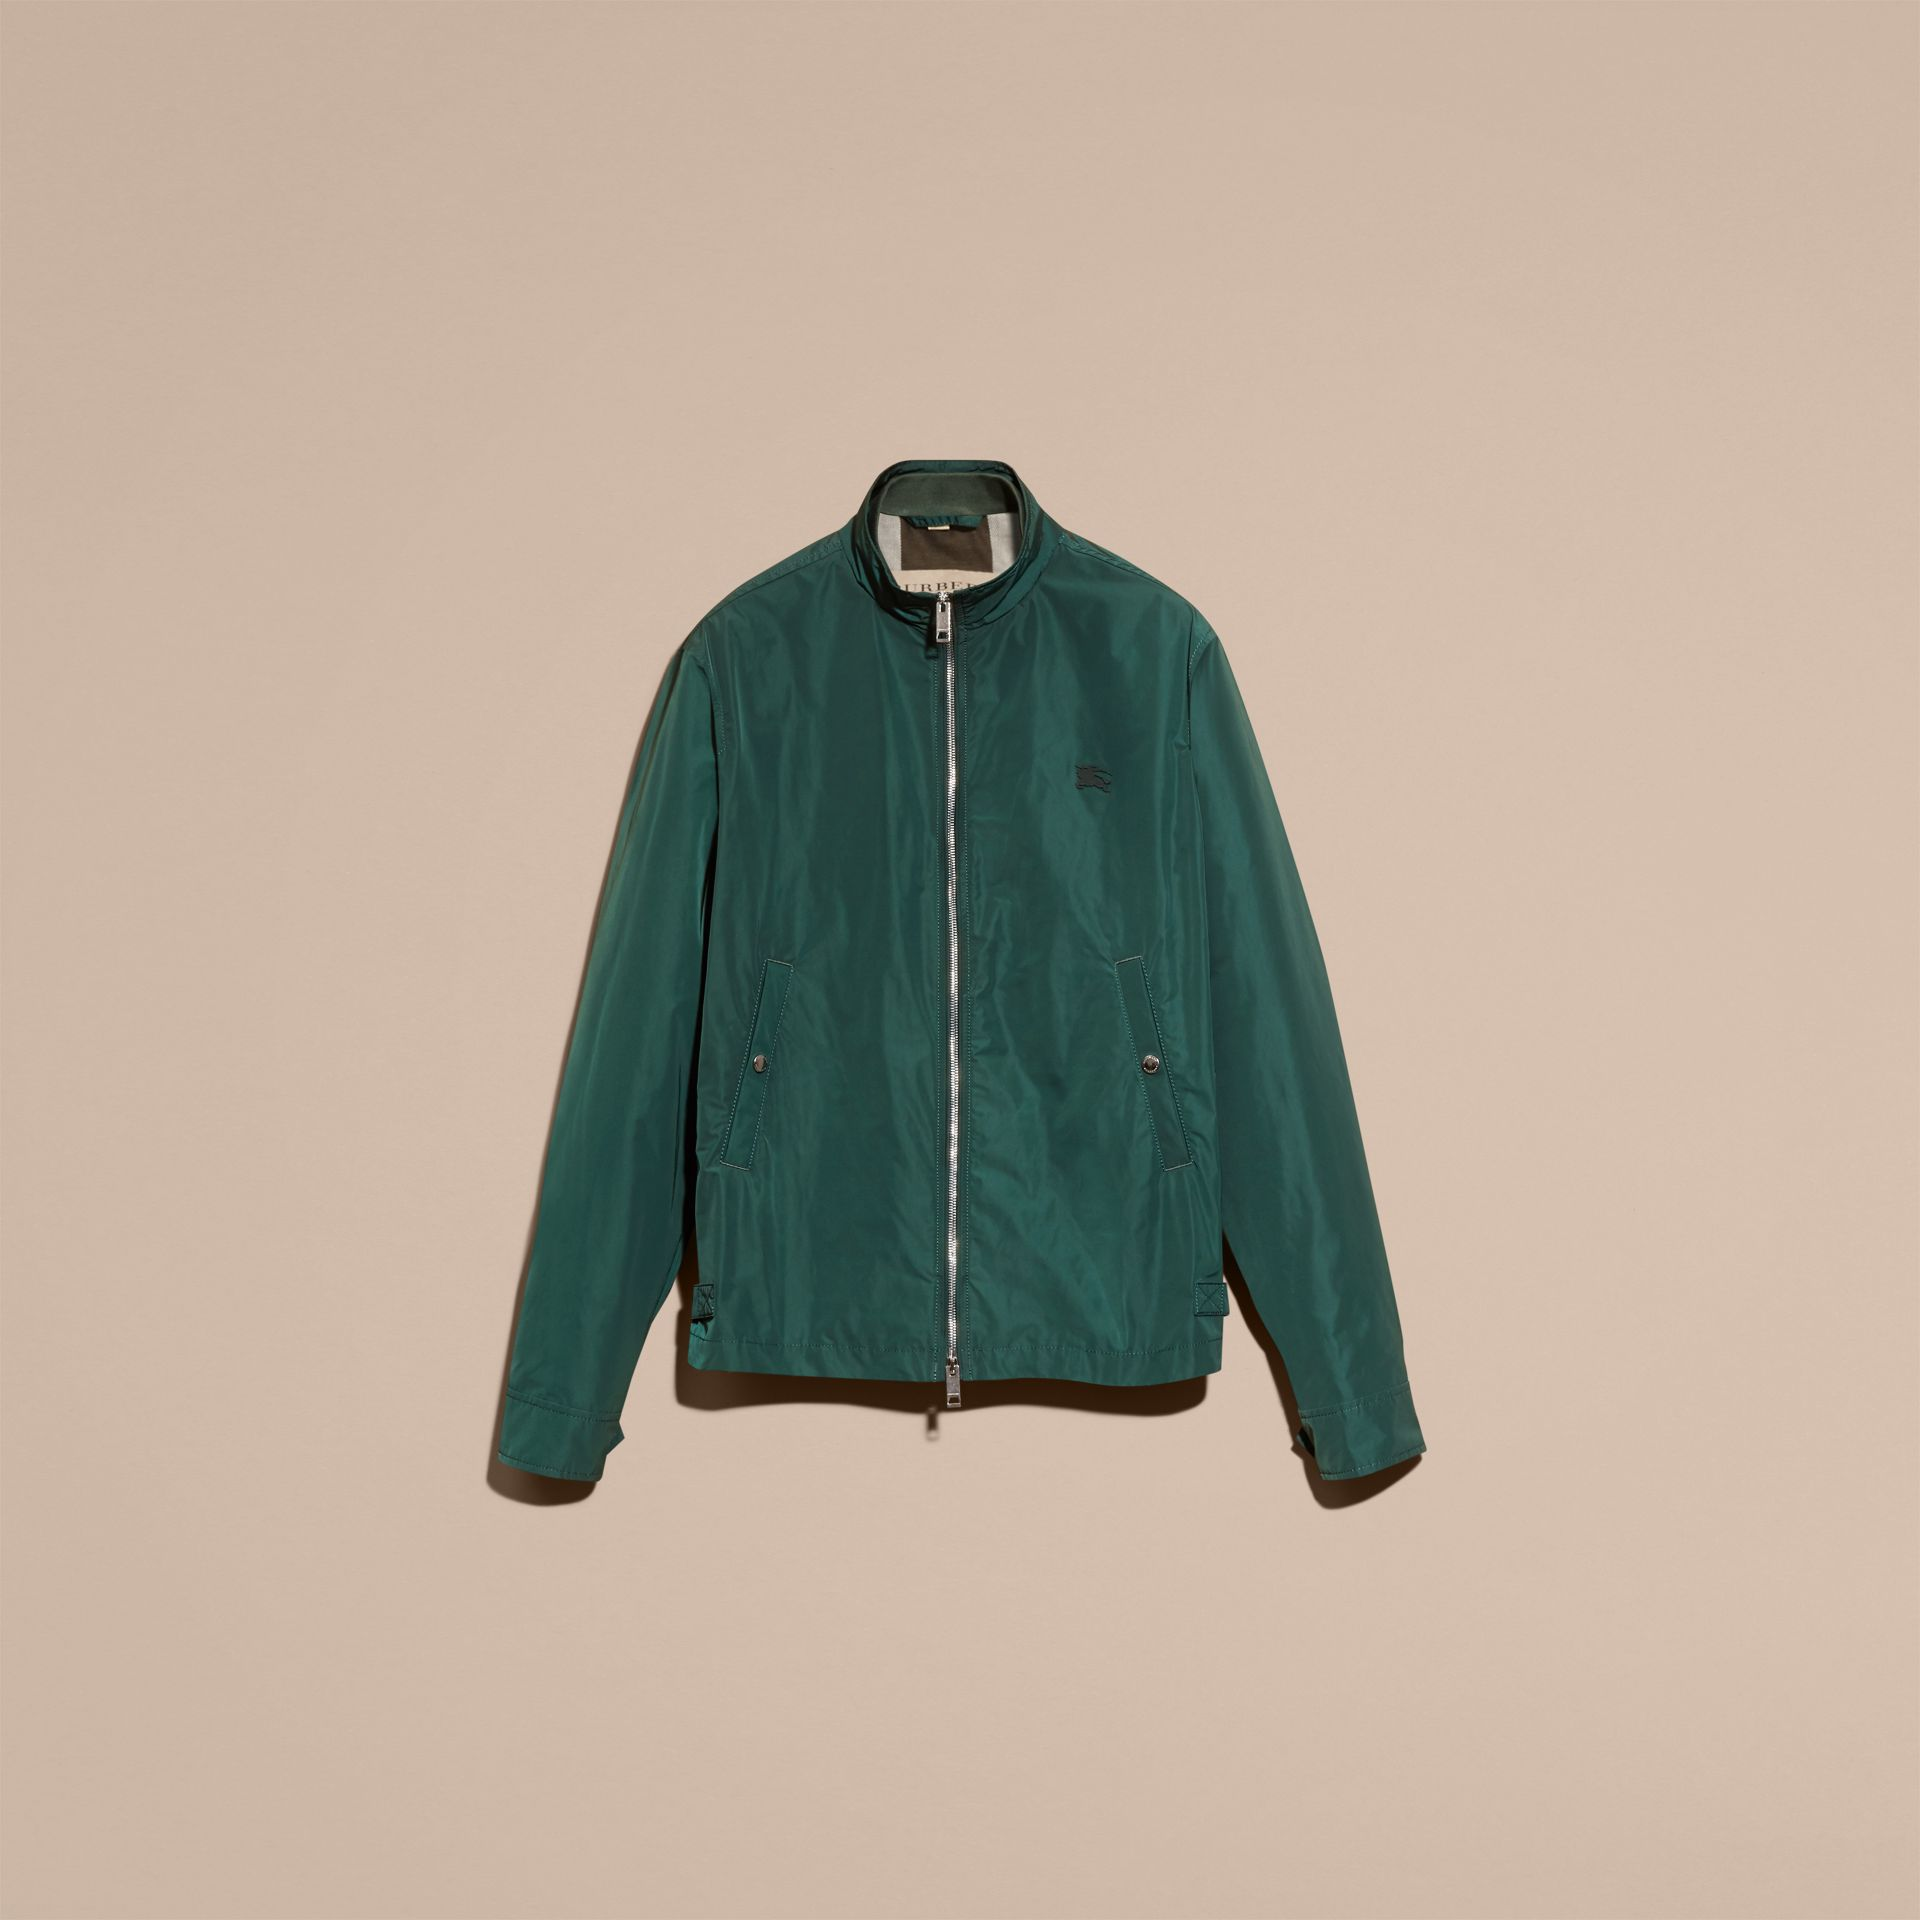 Lightweight Technical Jacket in Racing Green - Men | Burberry - gallery image 8